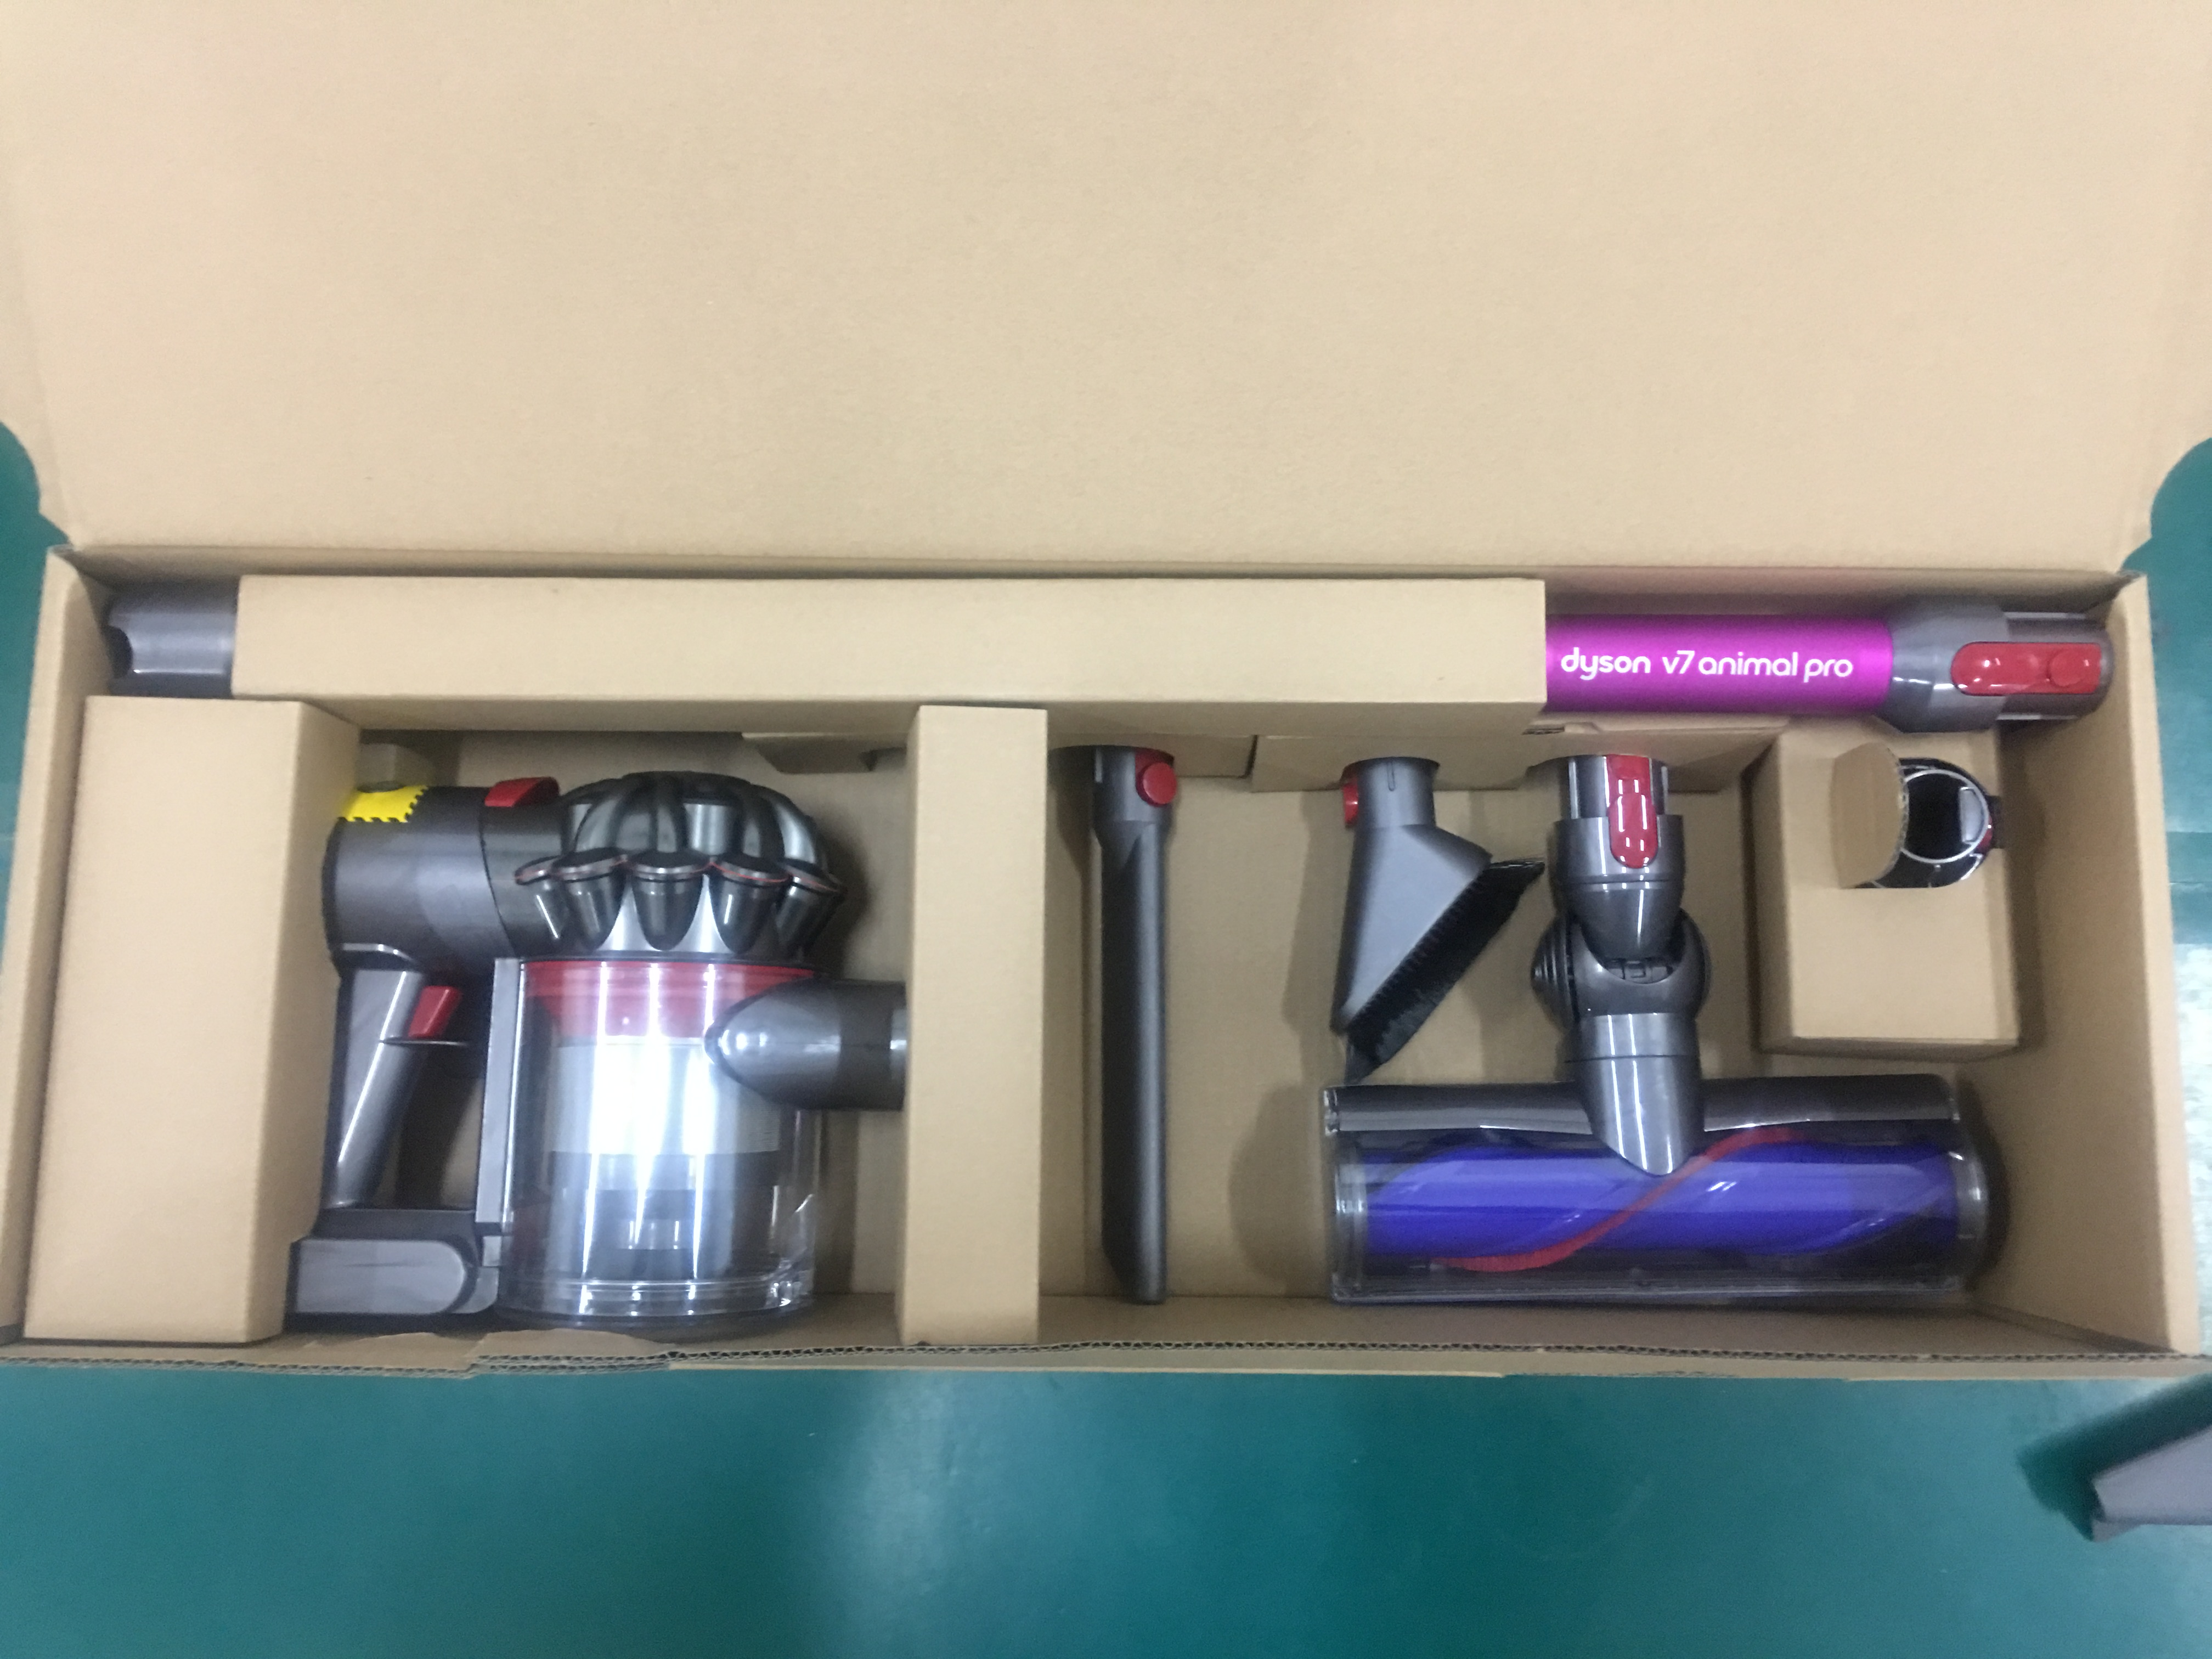 Dyson Dyson USA V7 small household large suction charging Wireless vacuum handheld dust remover